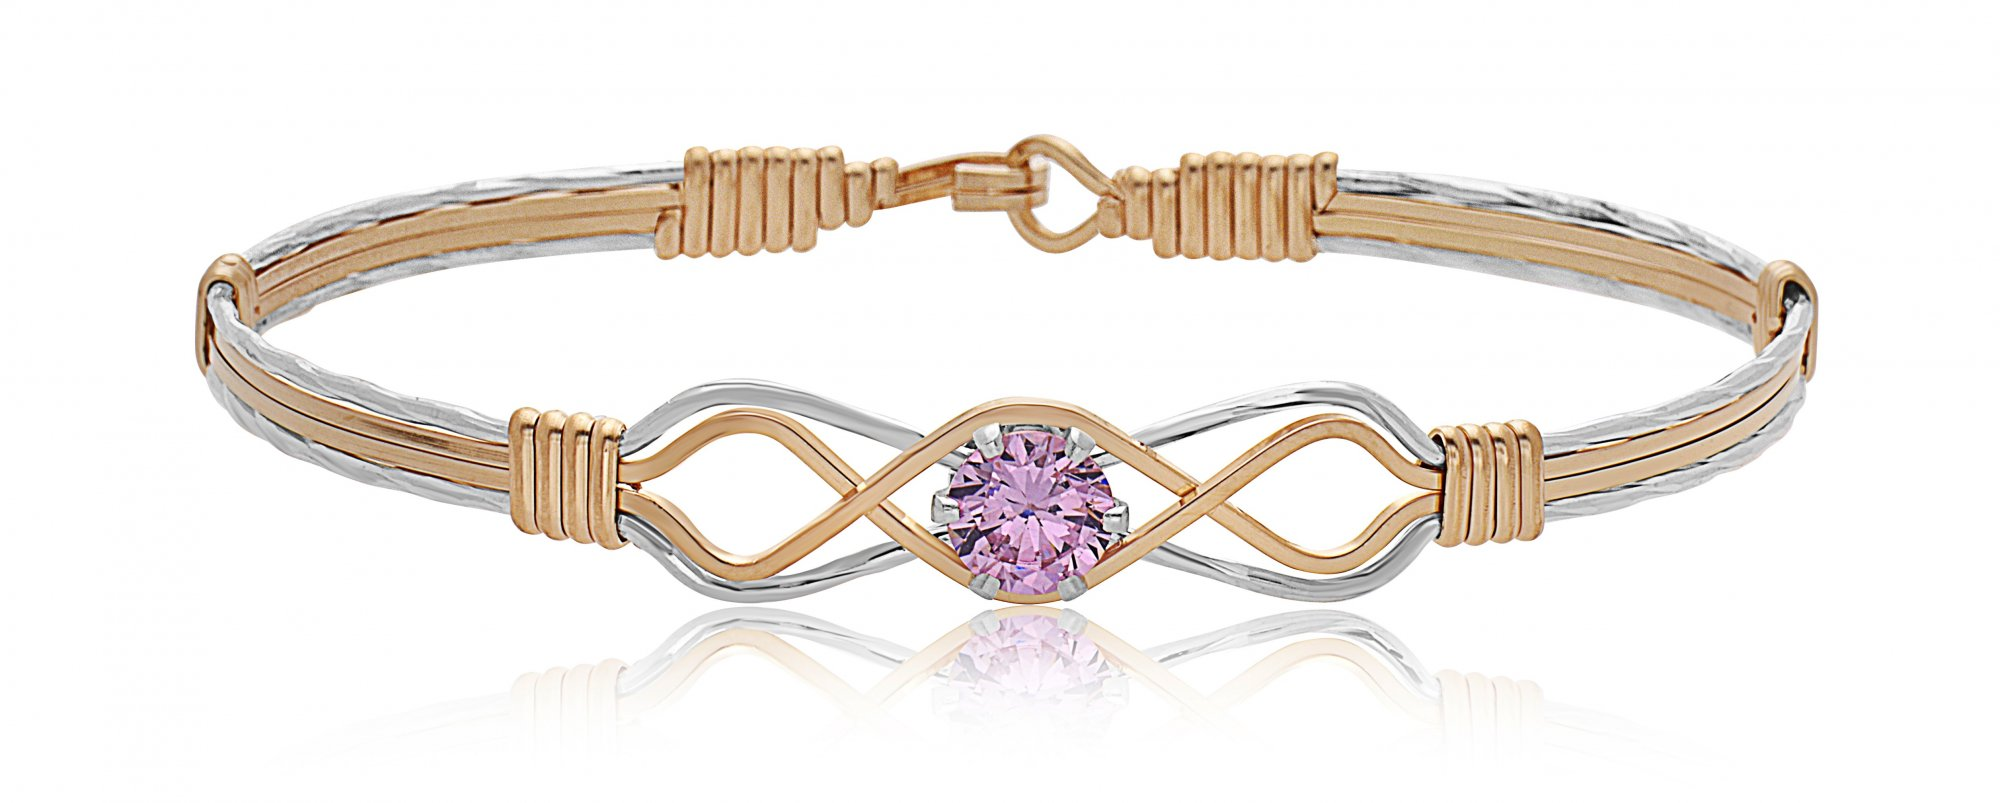 RONALDO DESIGNER JEWELRY ONE DAY AT AT TIME BRACELET